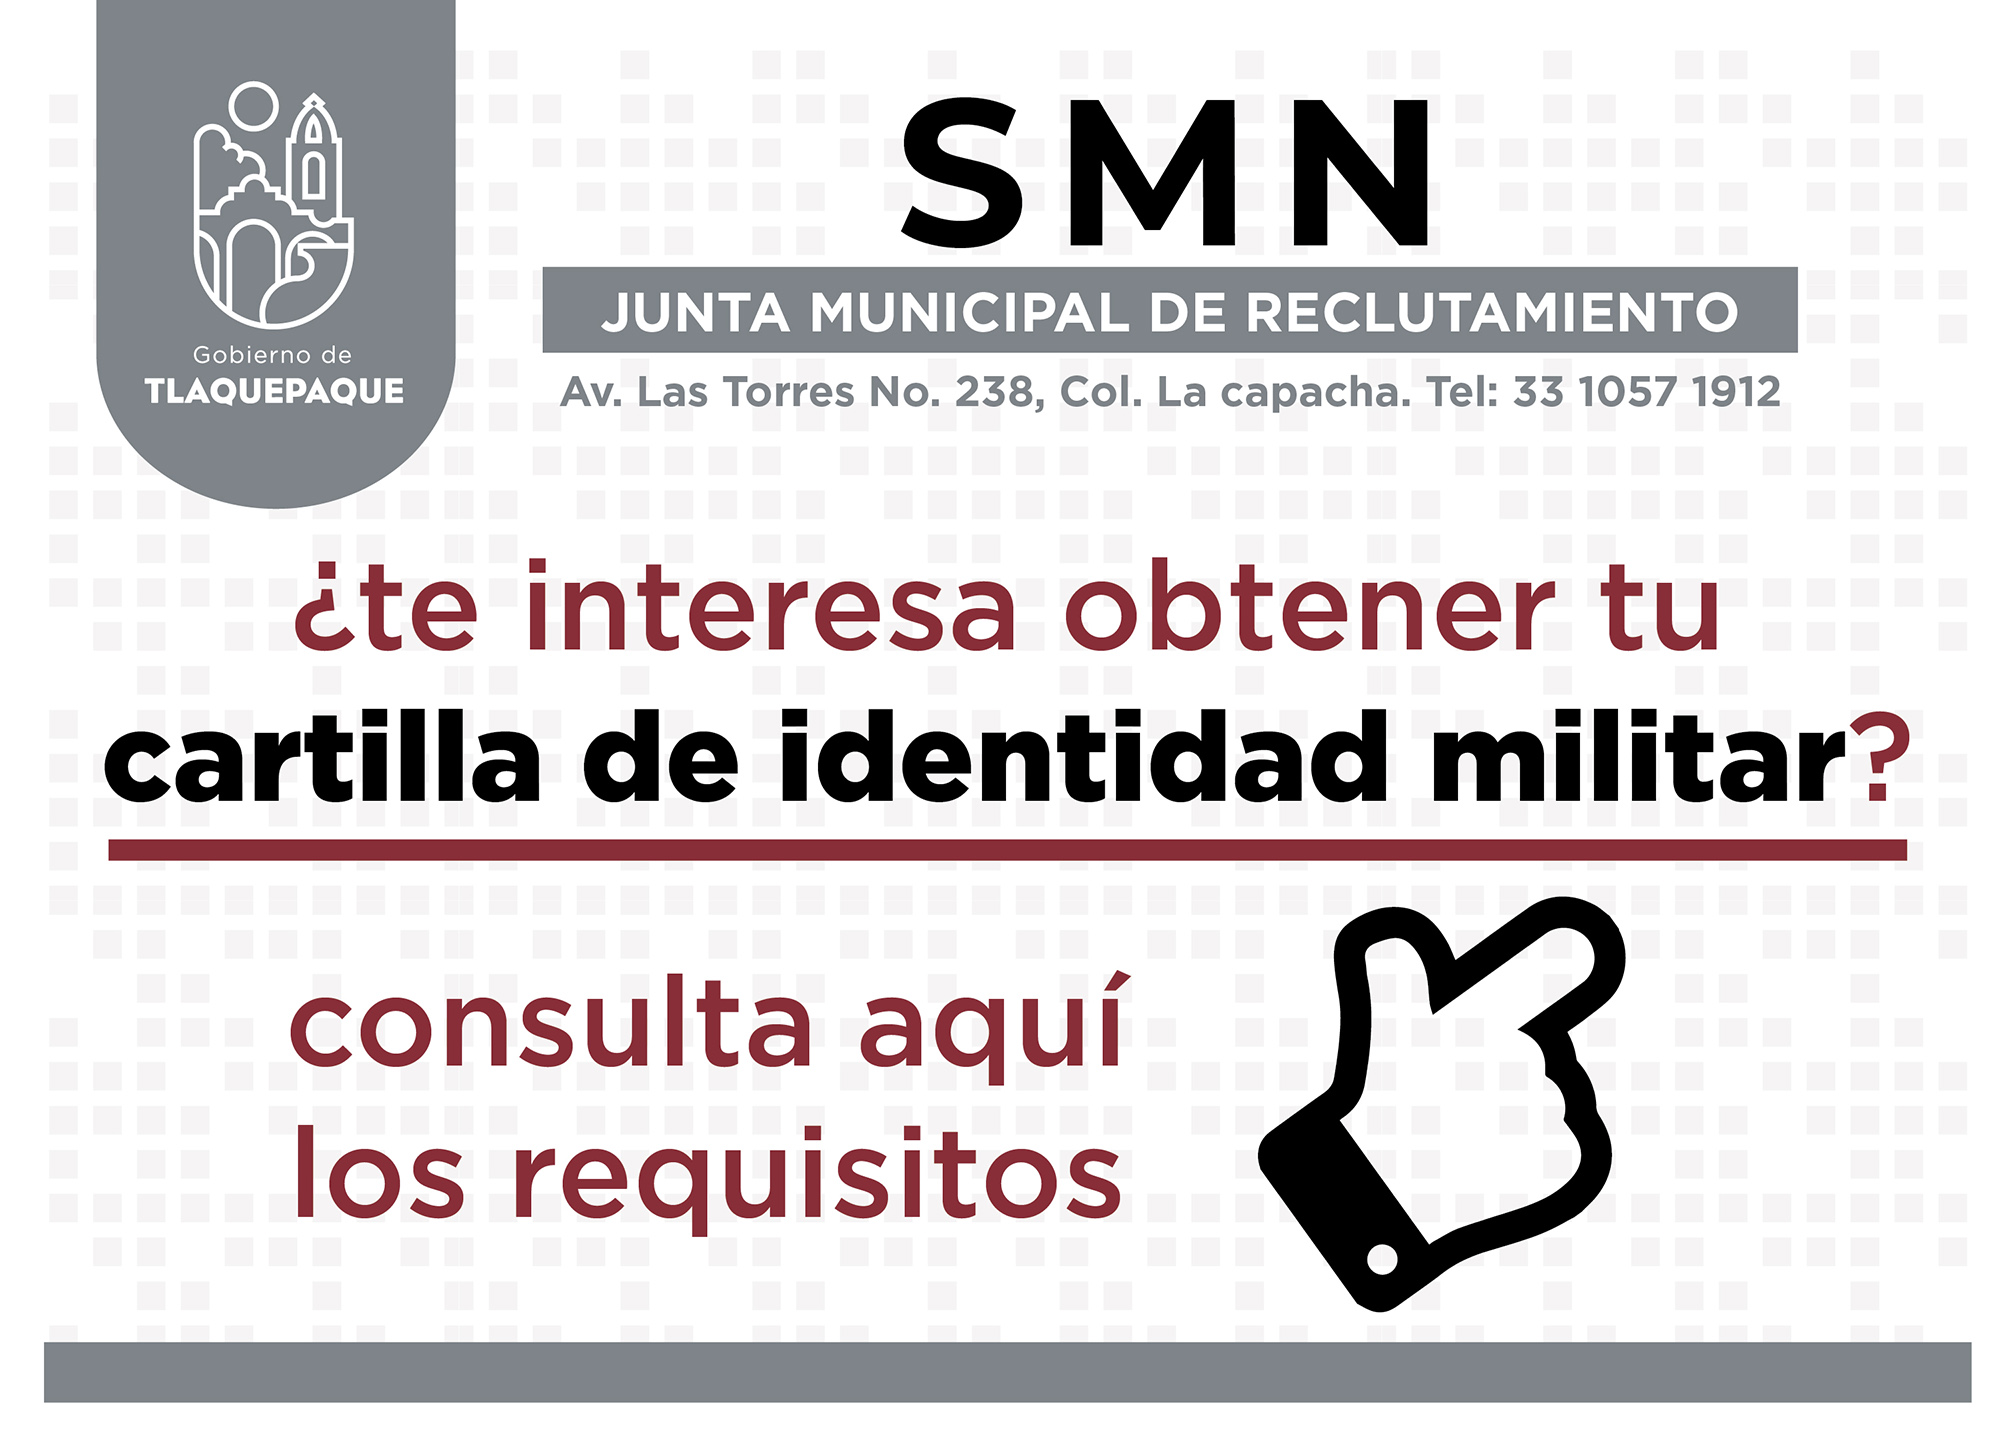 REQUISITOS PARA OBTENER CARTILLA DE IDENTIDAD MILITAR